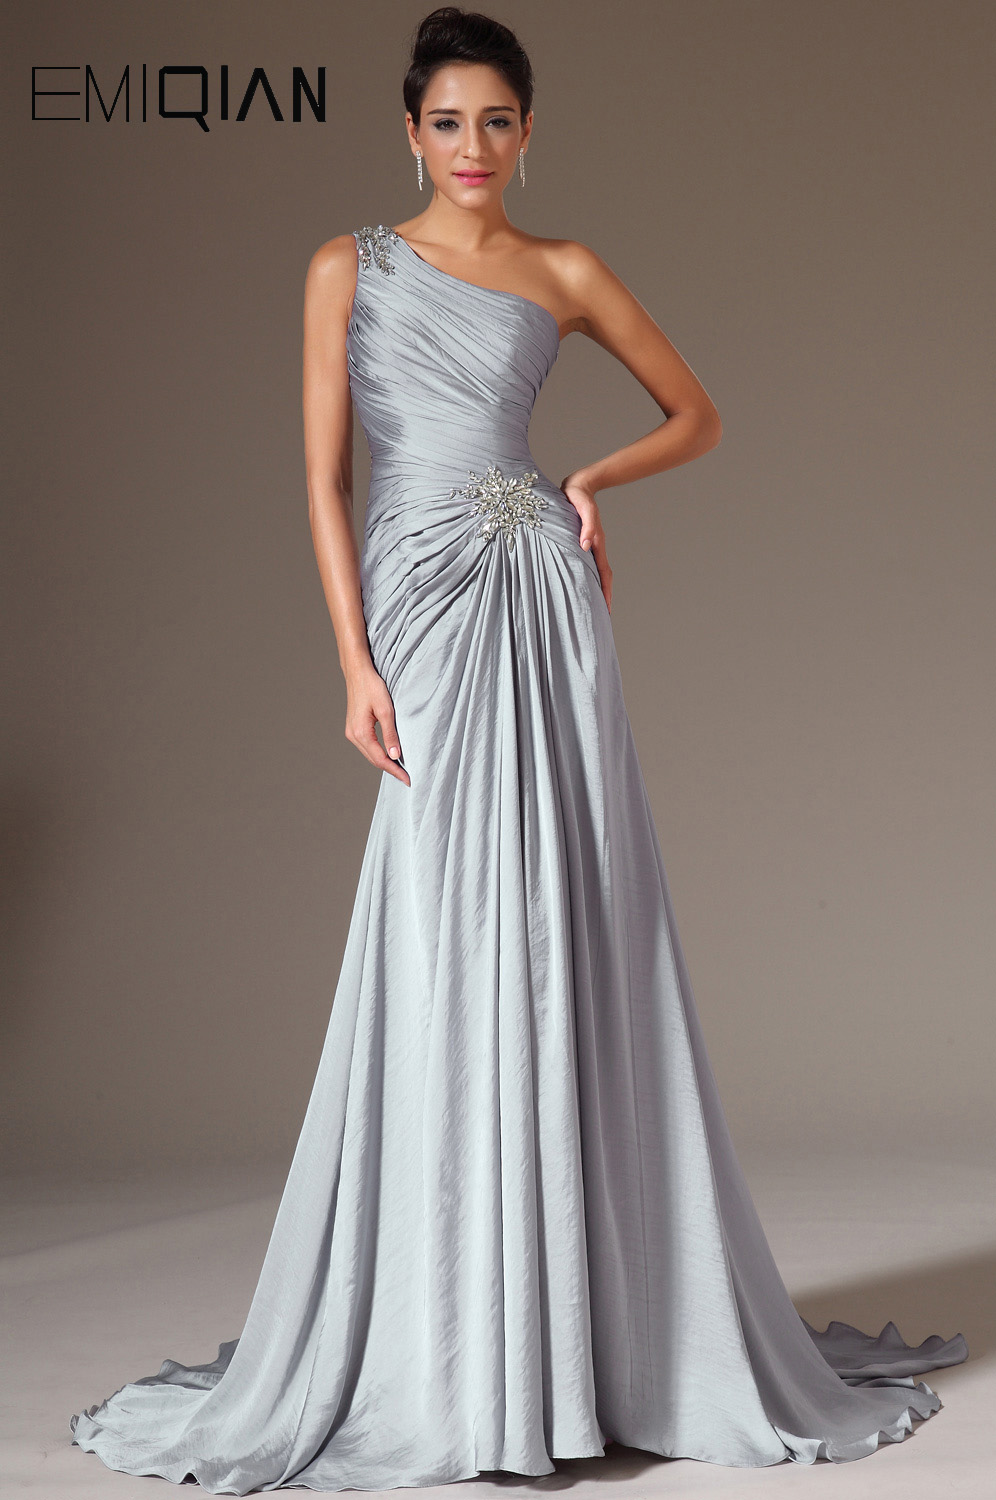 New Stylish Wedding Reception Dress, One Shoulder Prom Gown,Pleated Mermaid Evening Dresses